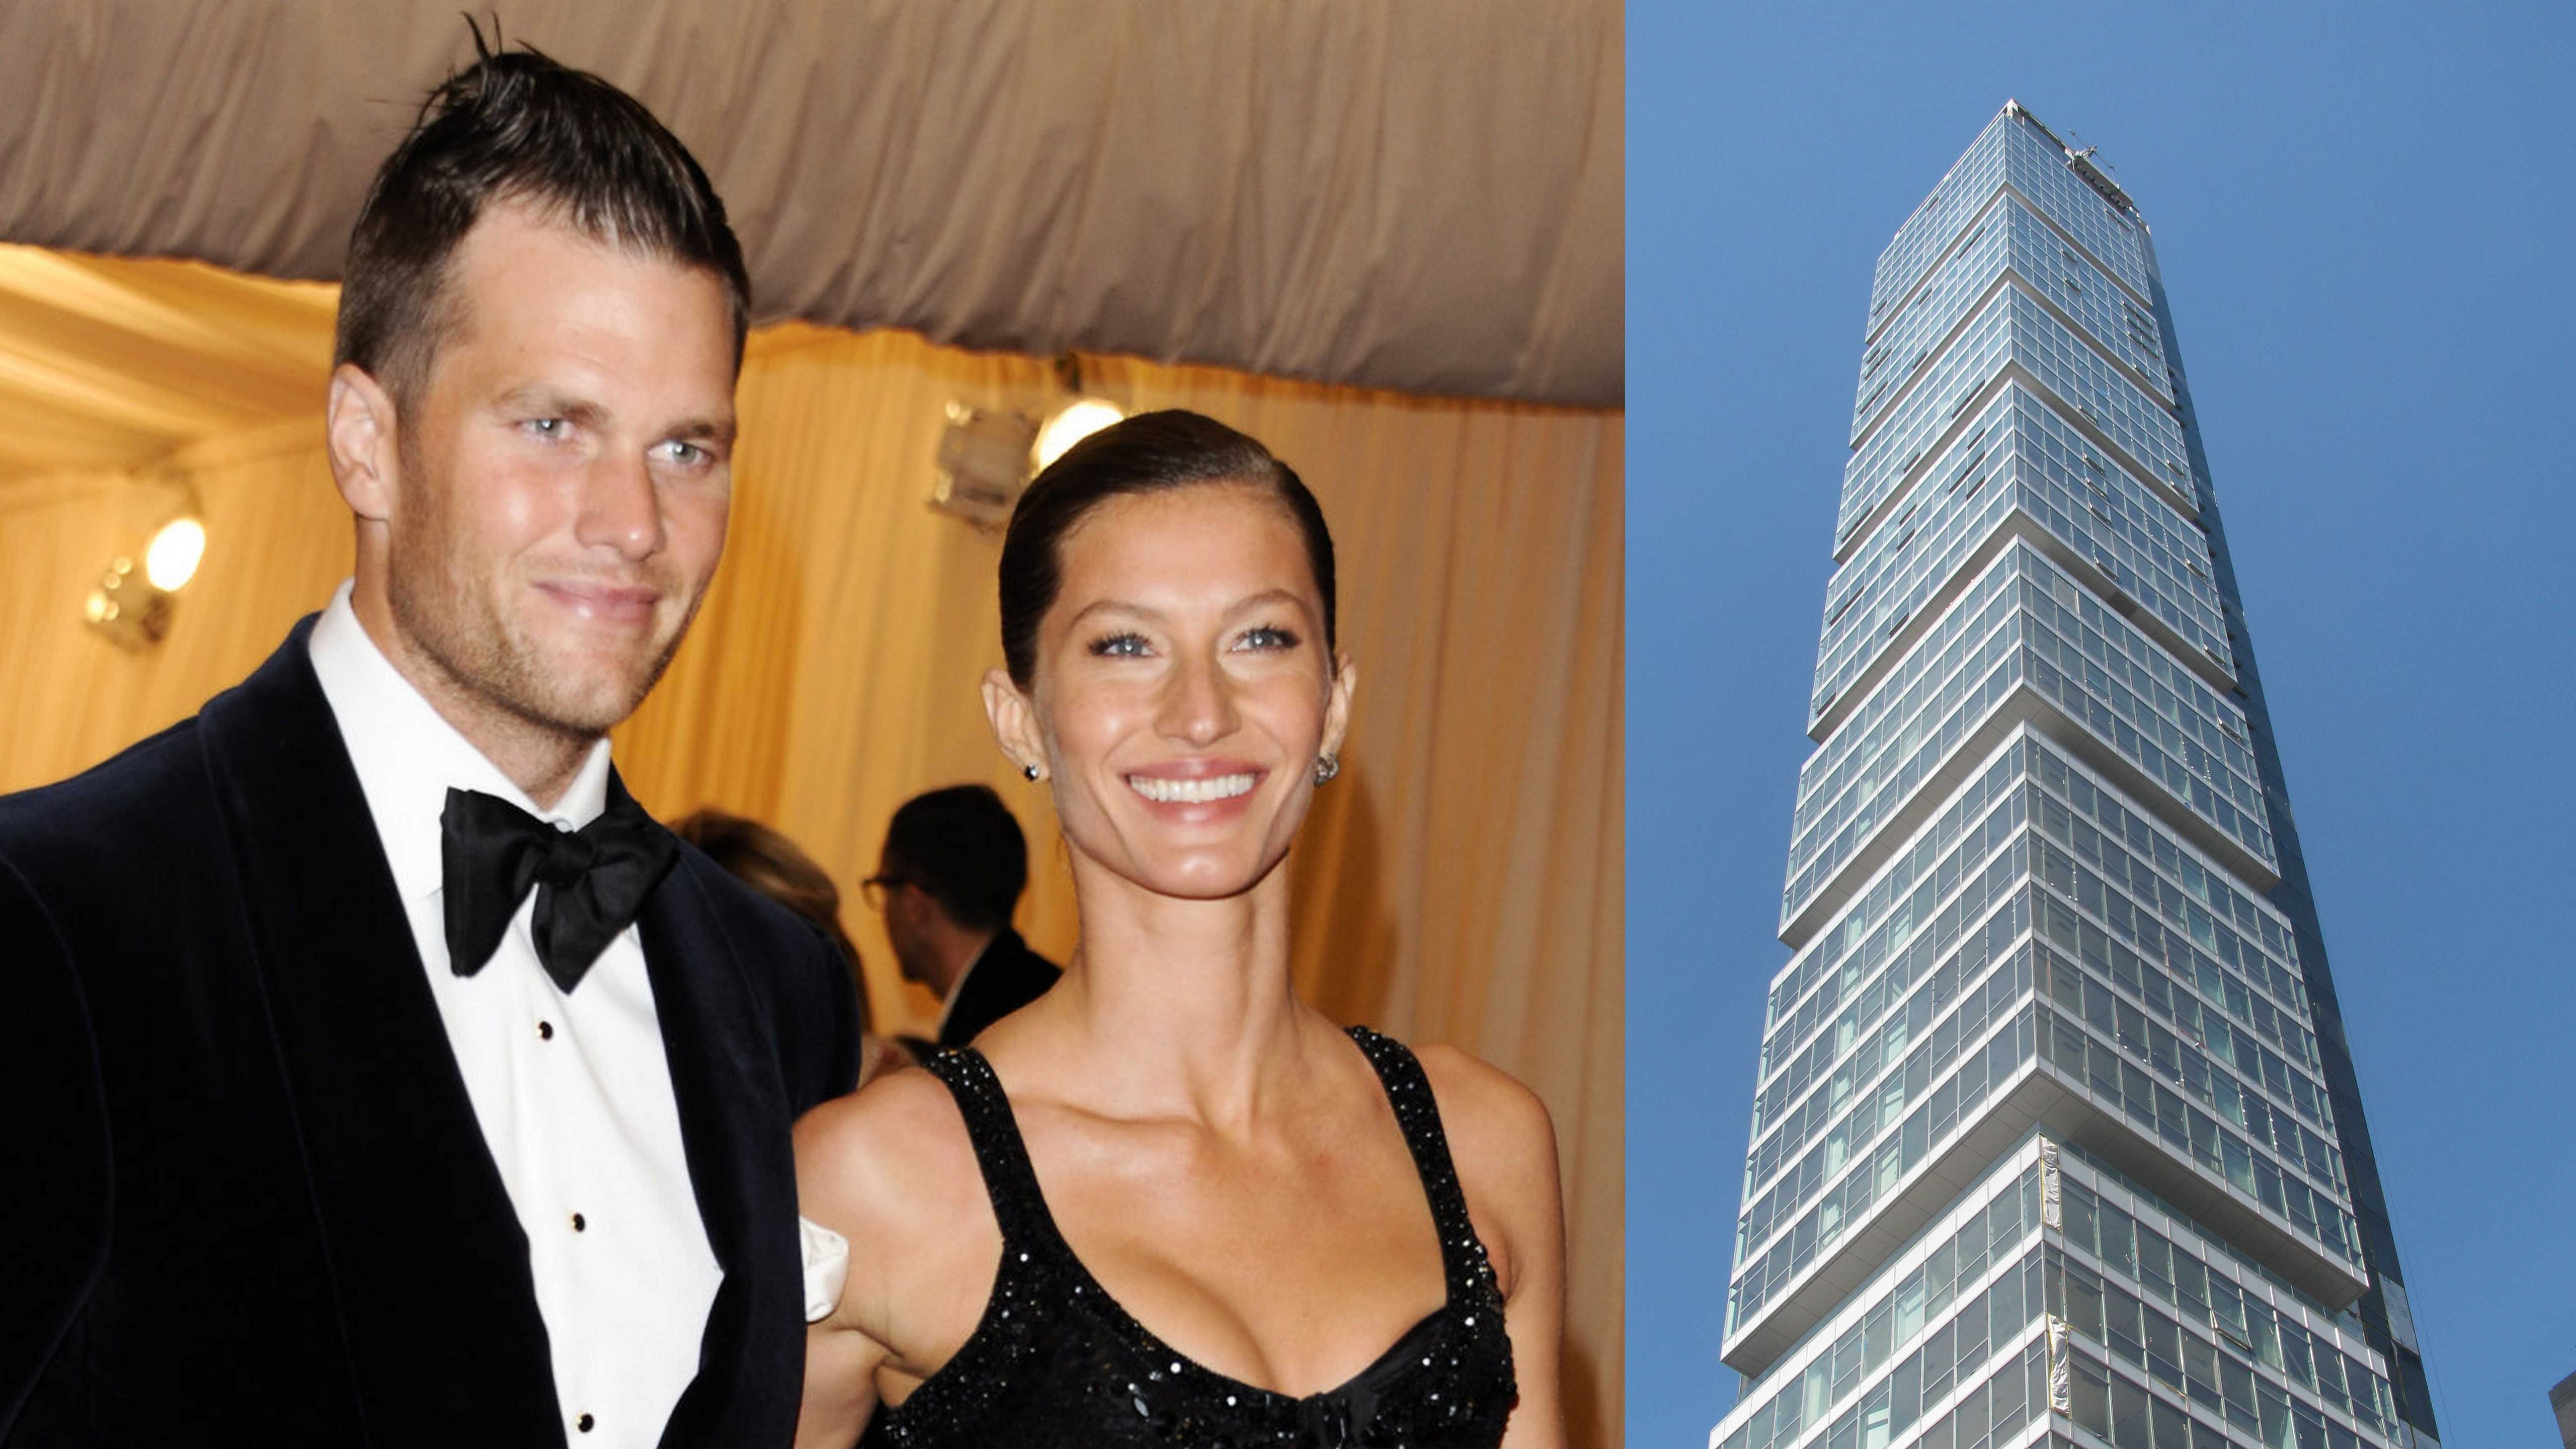 Brady Gisele NYC apartment 1025.jpg